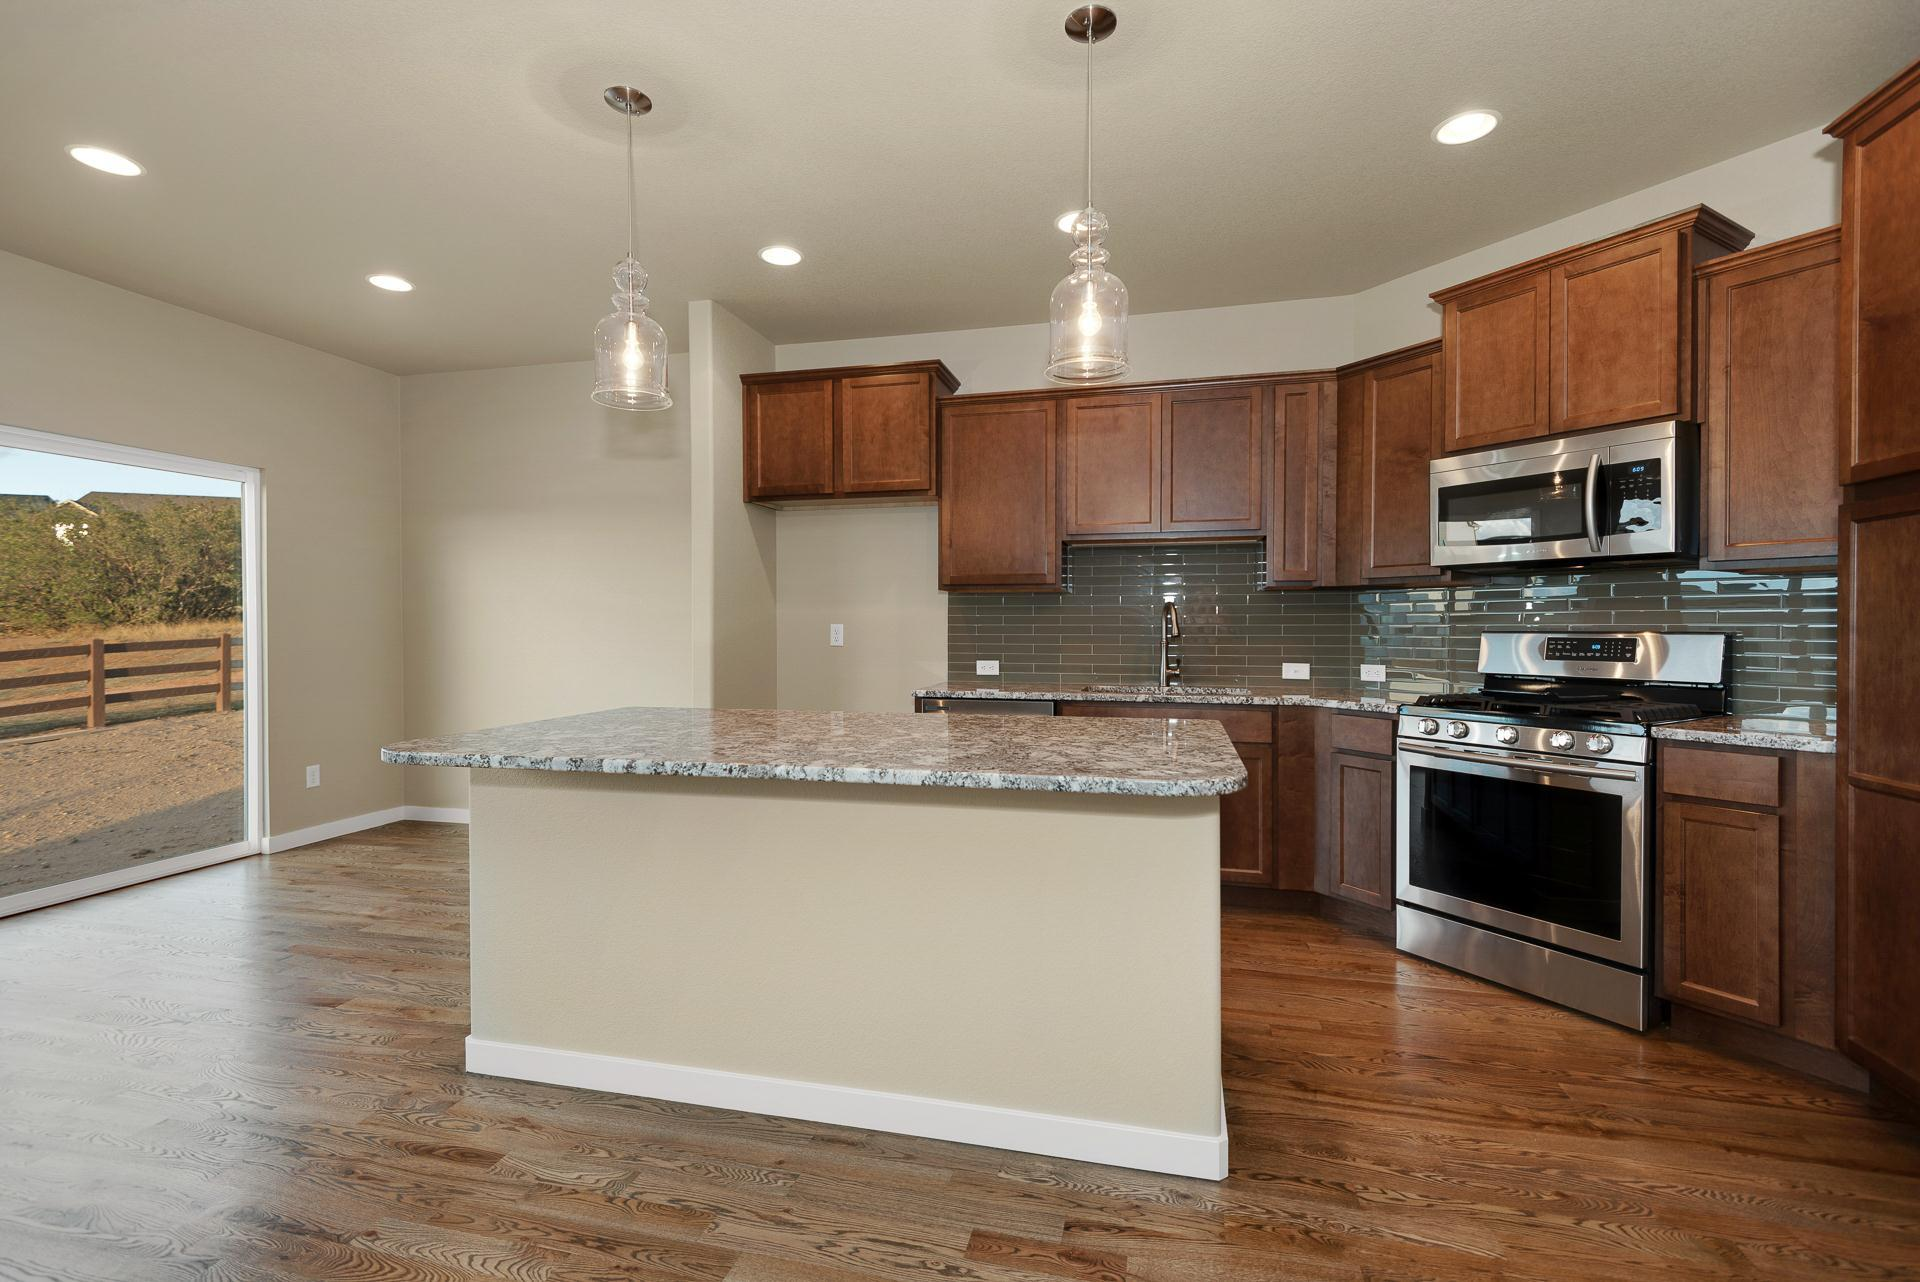 Kitchen featured in the Appaloosa II By Vantage Homes in Colorado Springs, CO